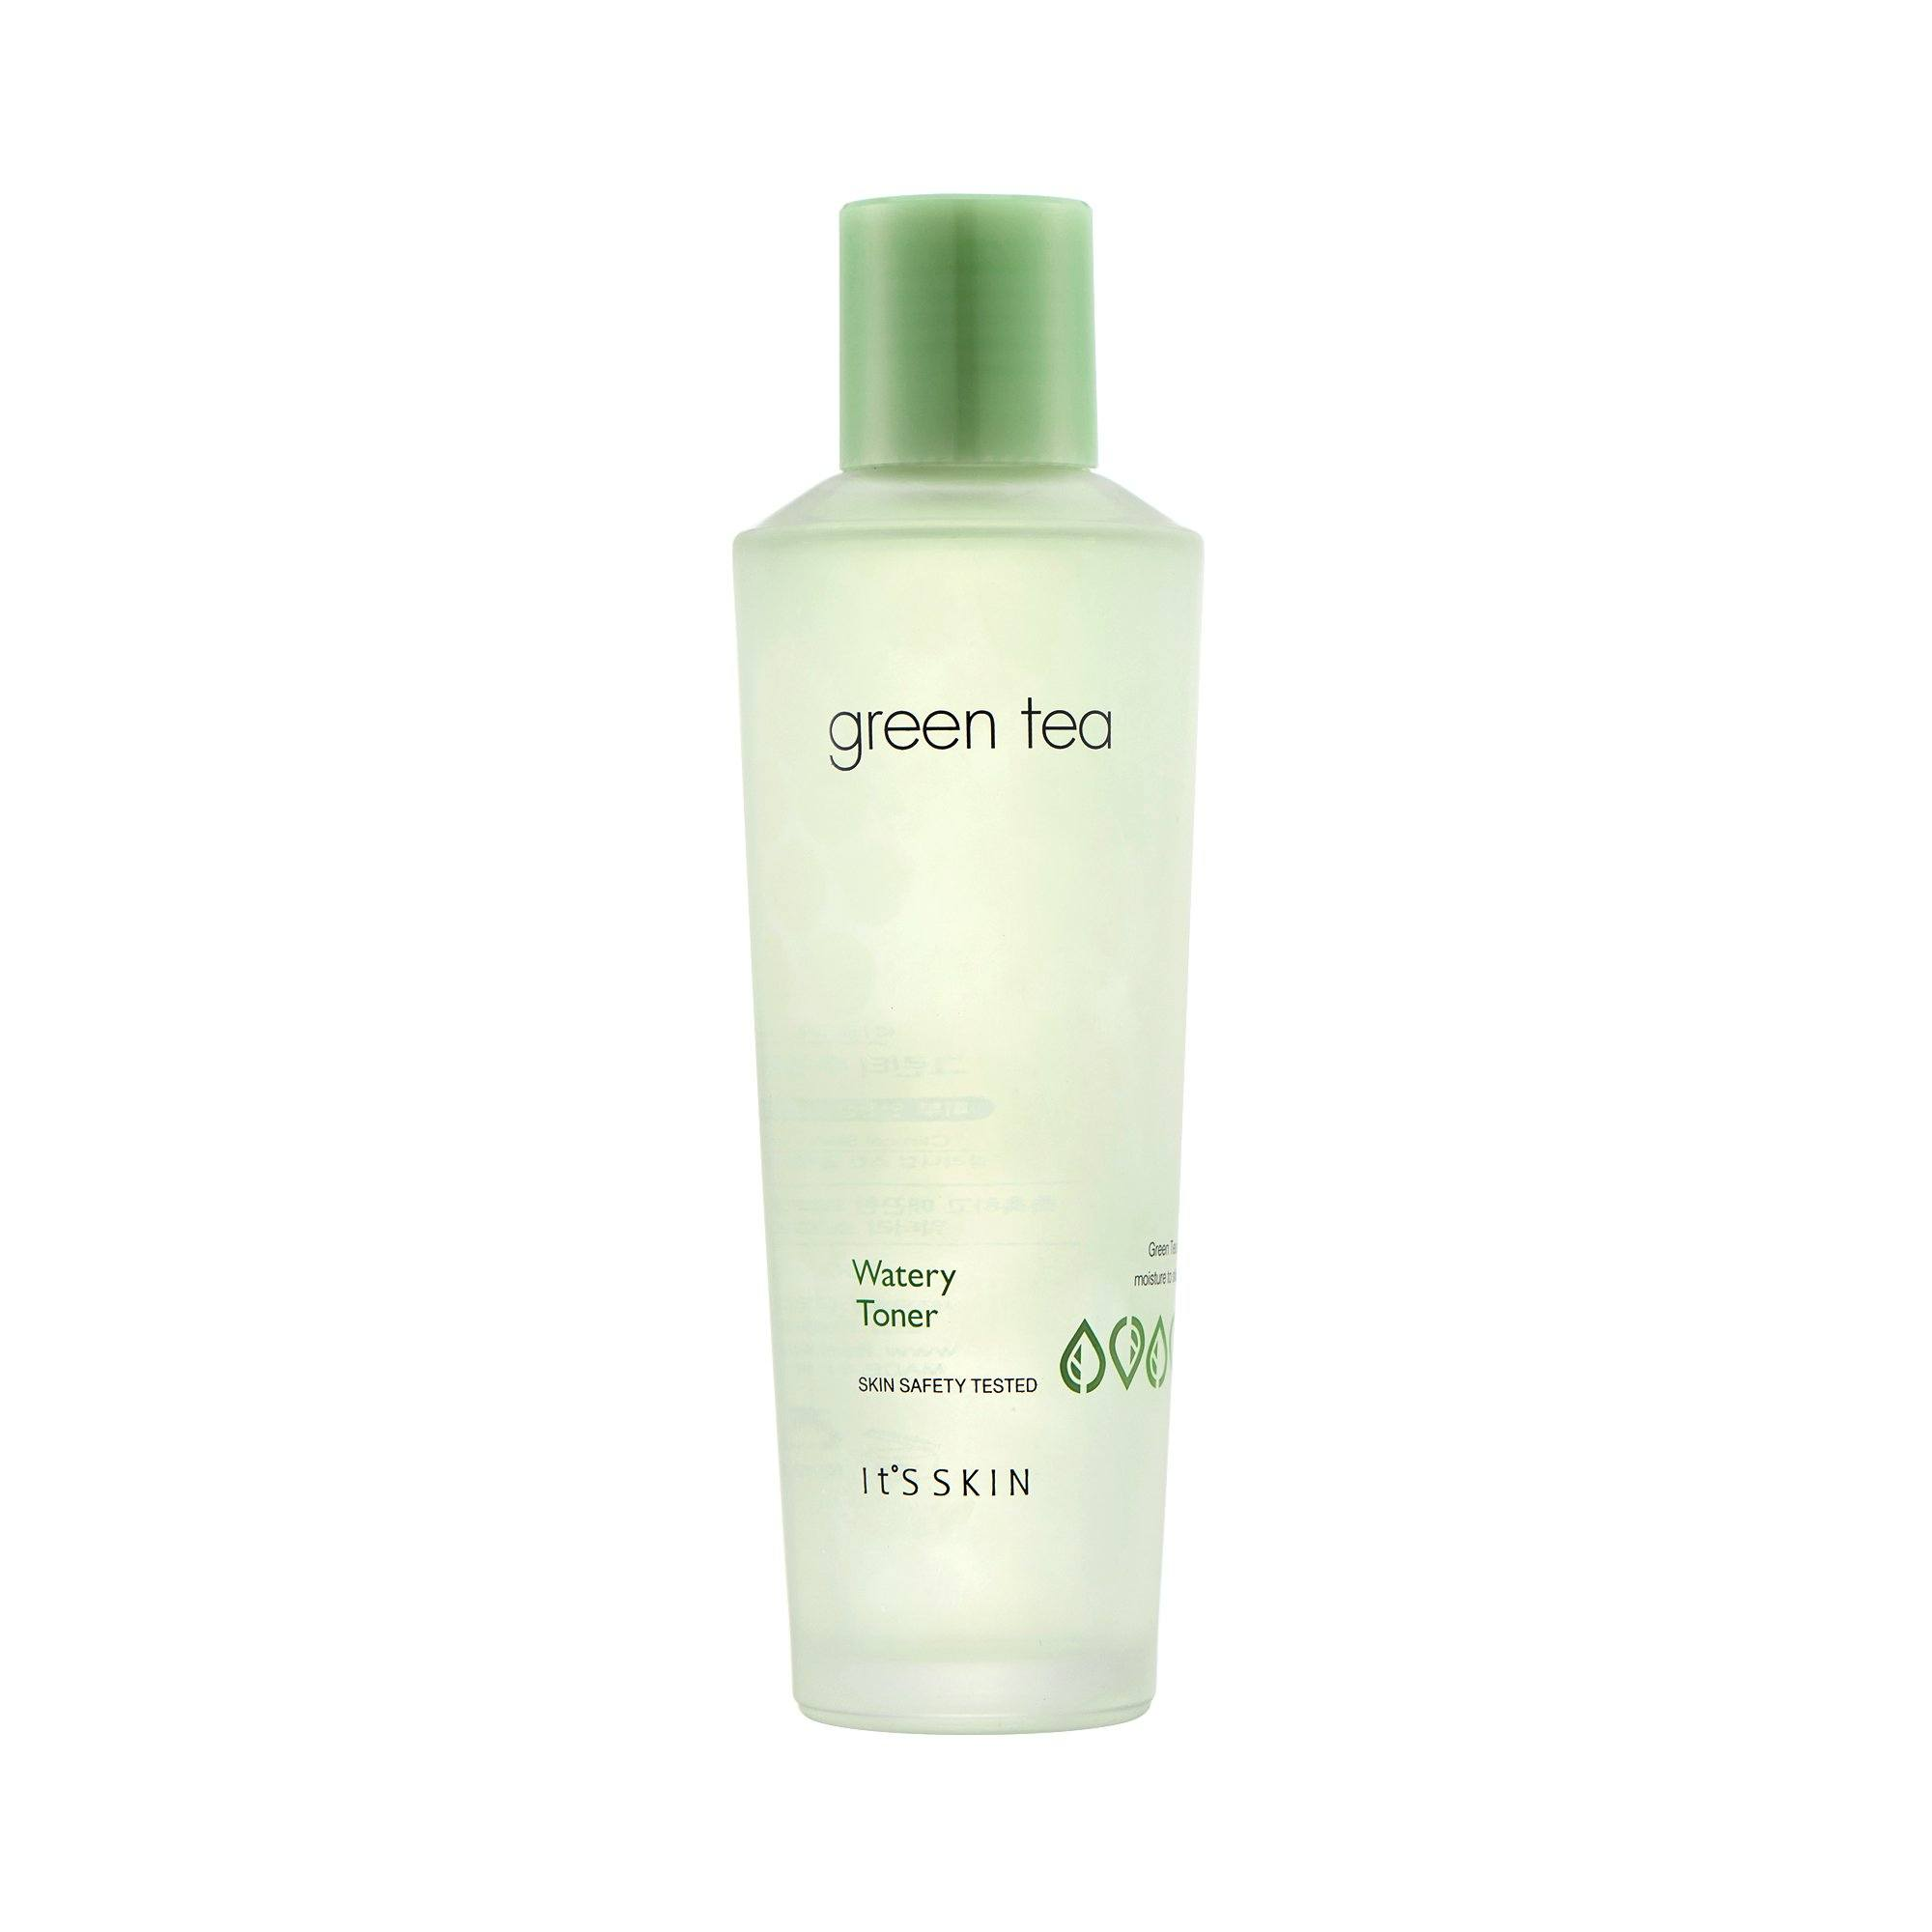 Health & Beauty > Personal Care > Cosmetics > Skin Care > Toners & Astringents > Toners - Green Tea Watery Toner Tonik Do Twarzy 150 Ml